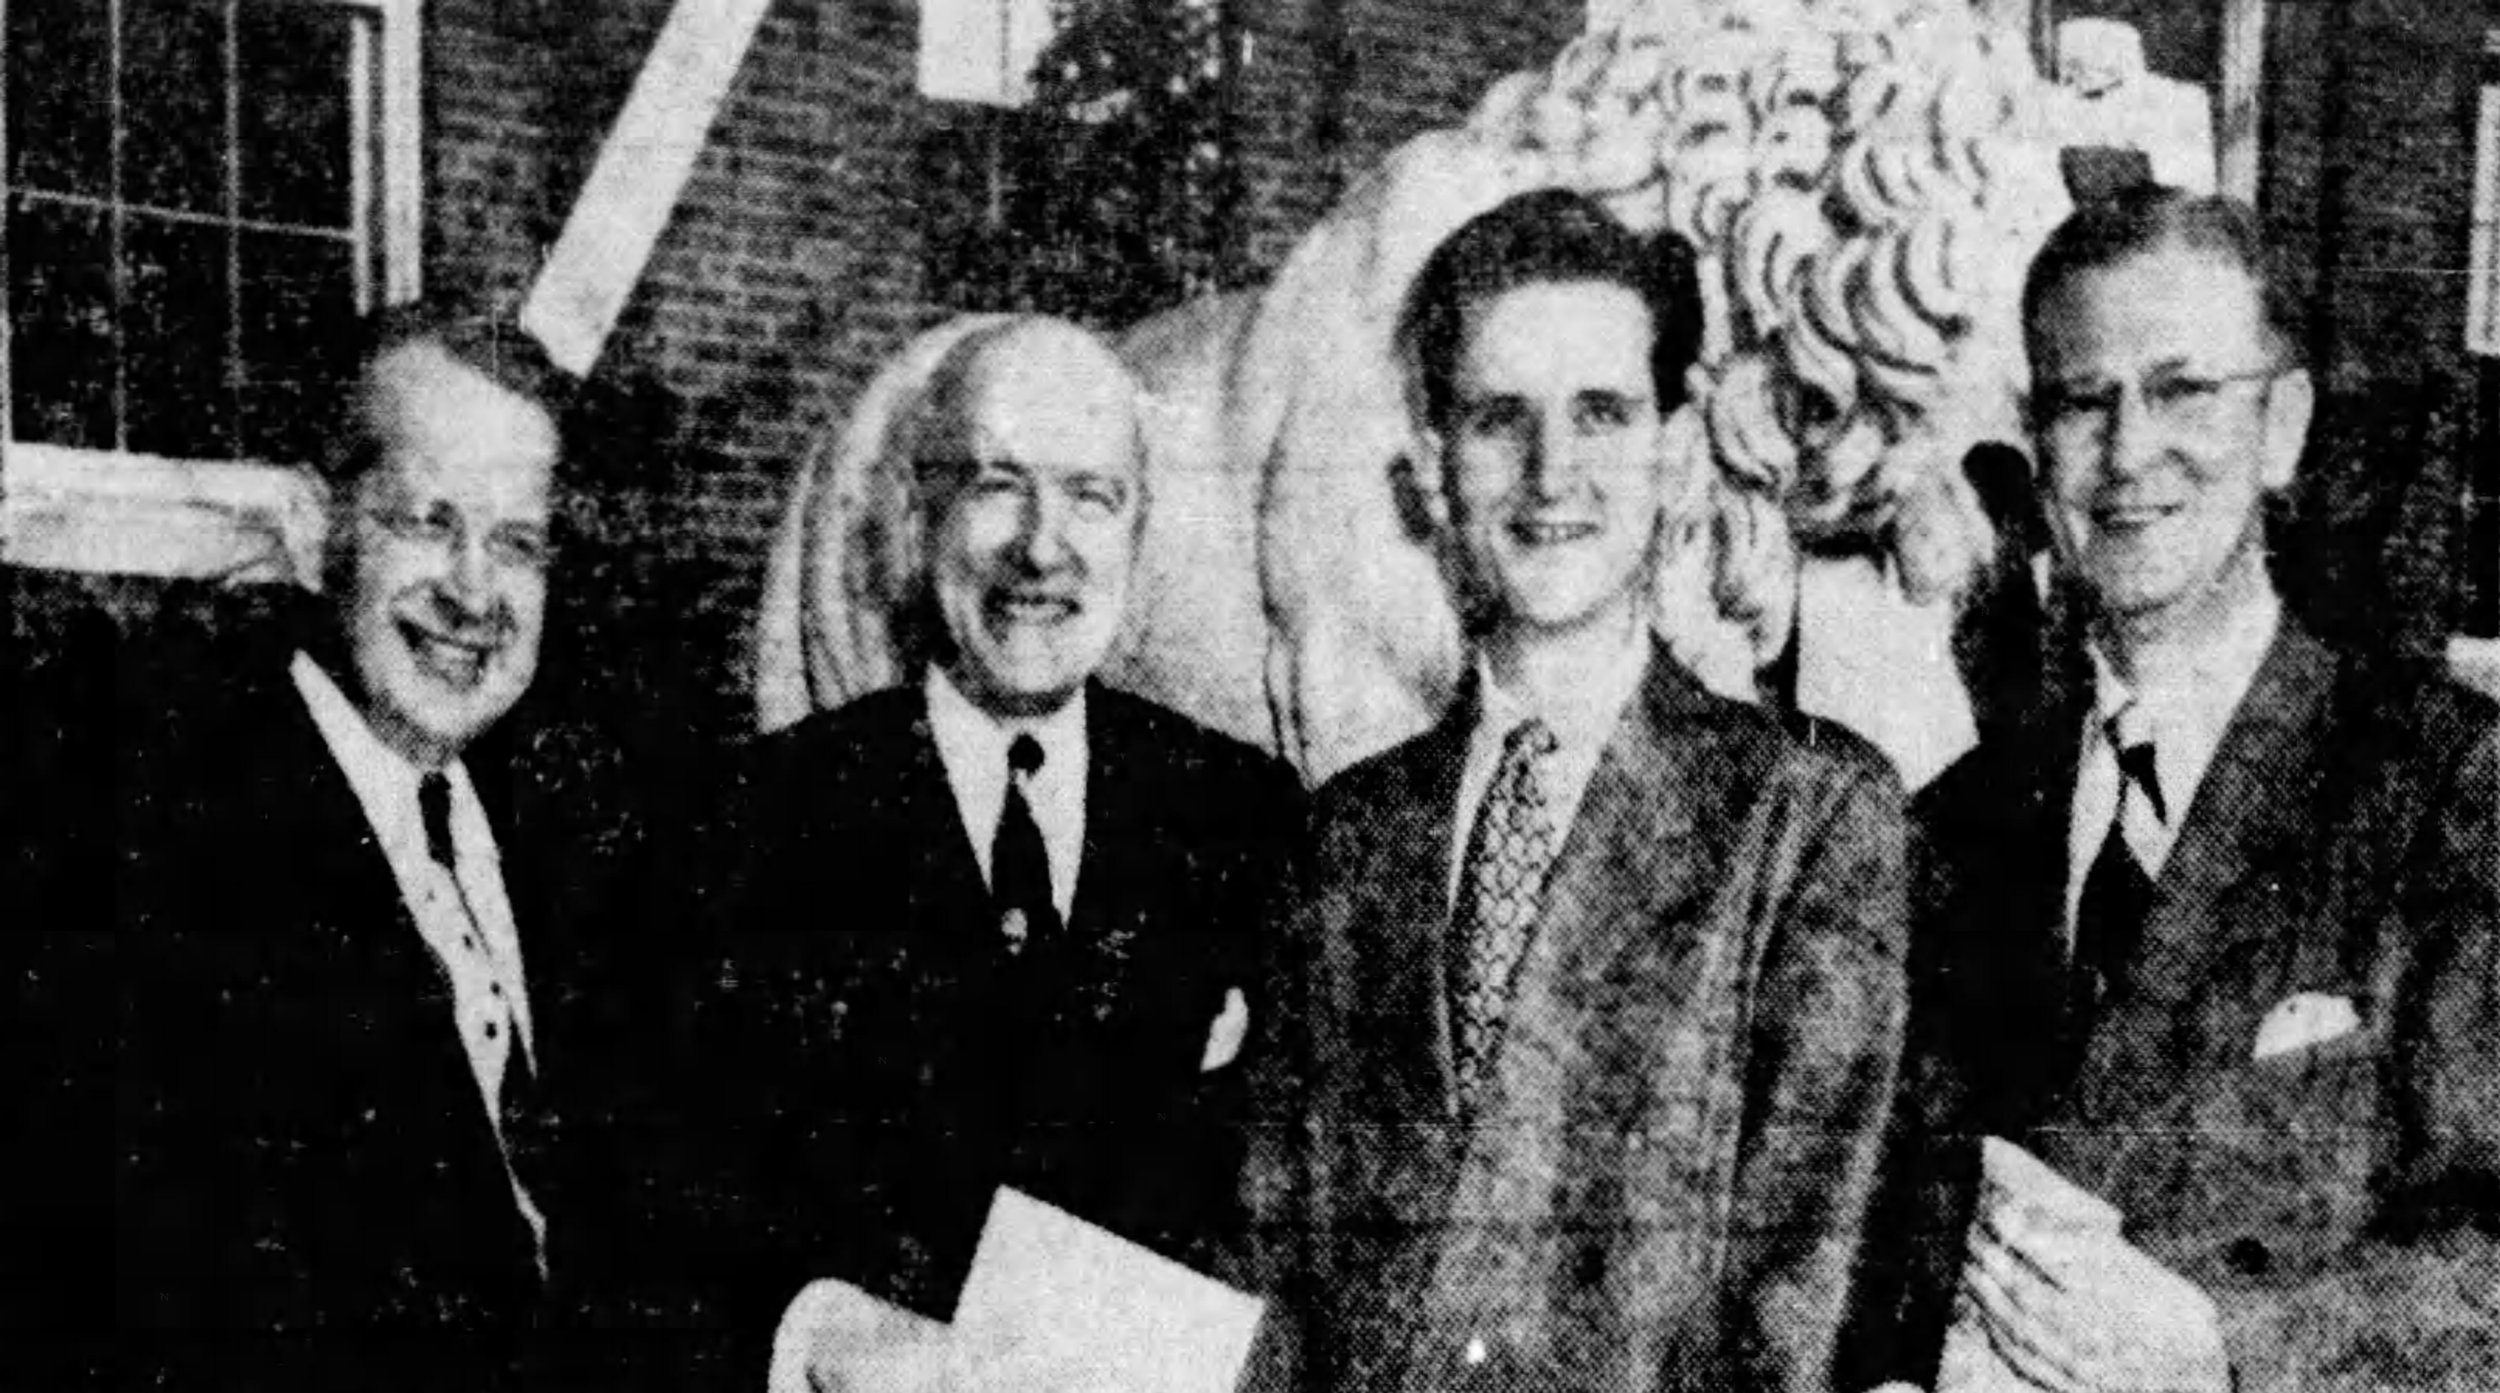 Alumni Association president, UC president, Student Council president and Building Committee Chairman pictured at the McMicken dedication ceremony, April 1950 [via the Cincinnati Enquirer]